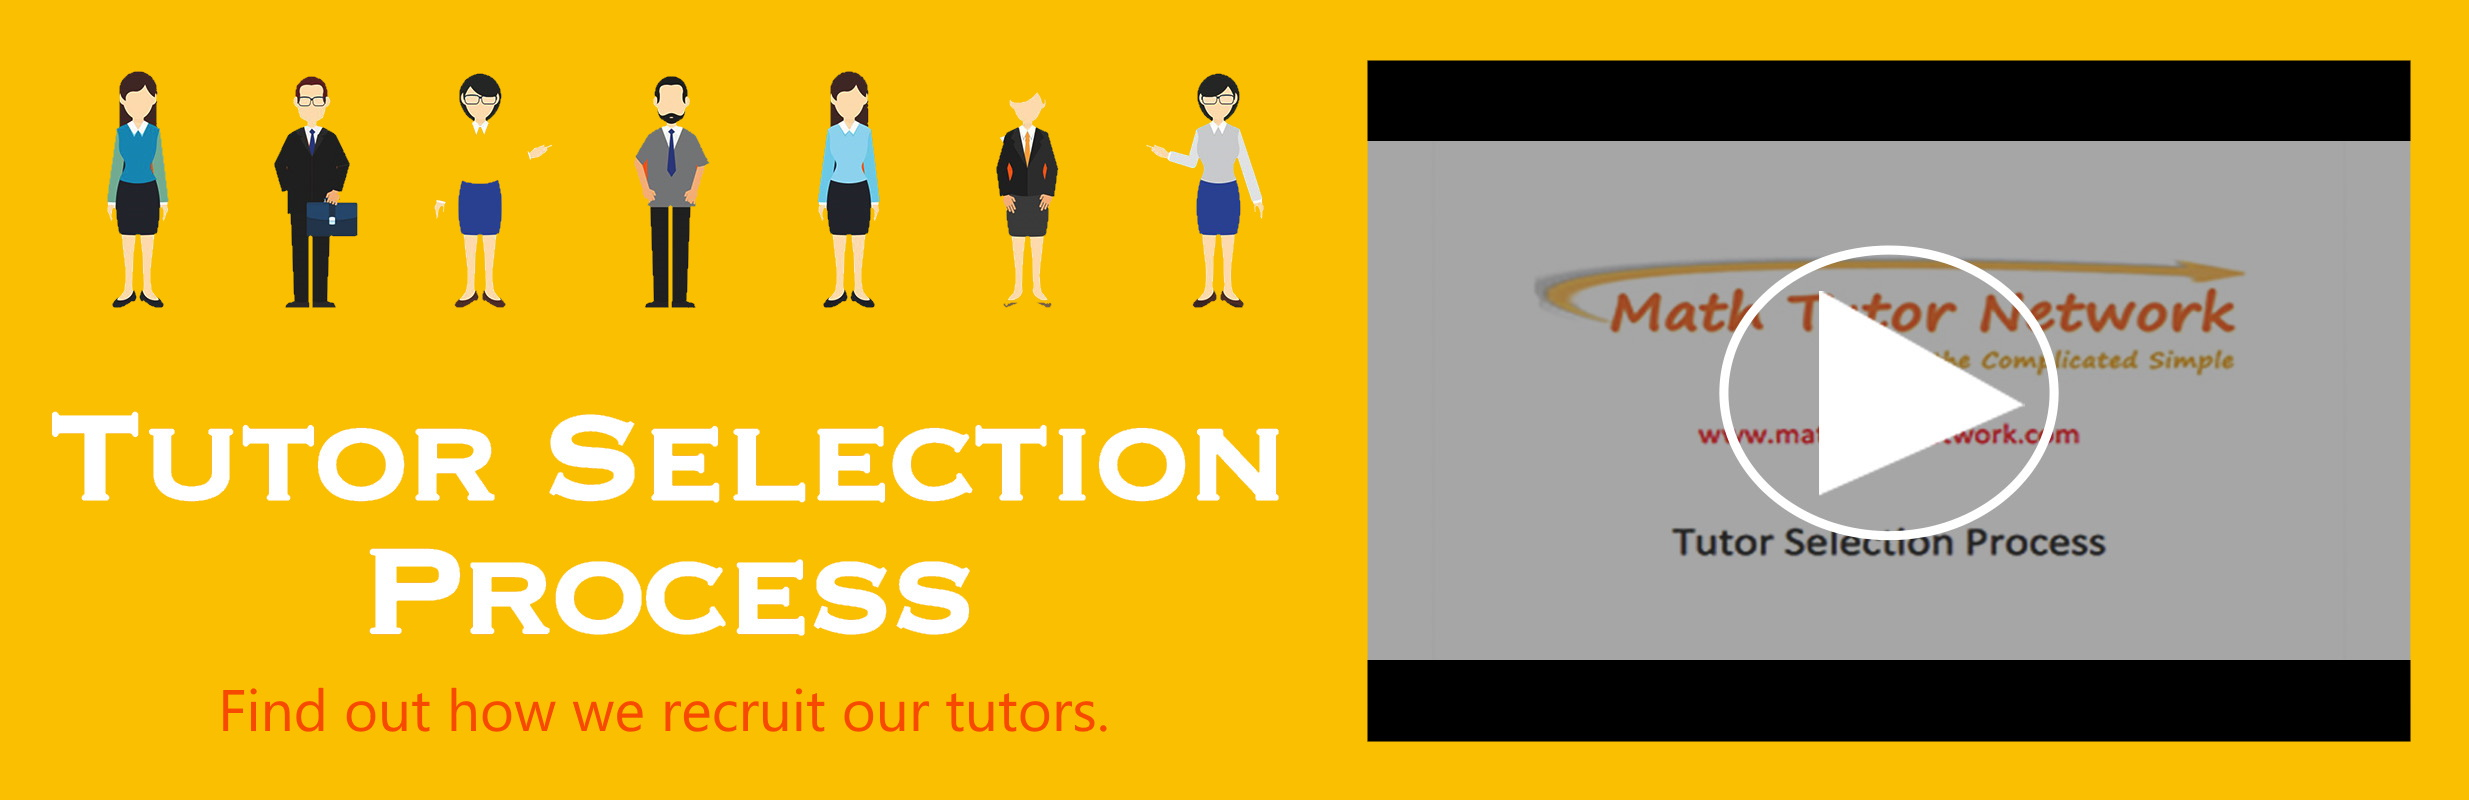 Tutor Selection Process